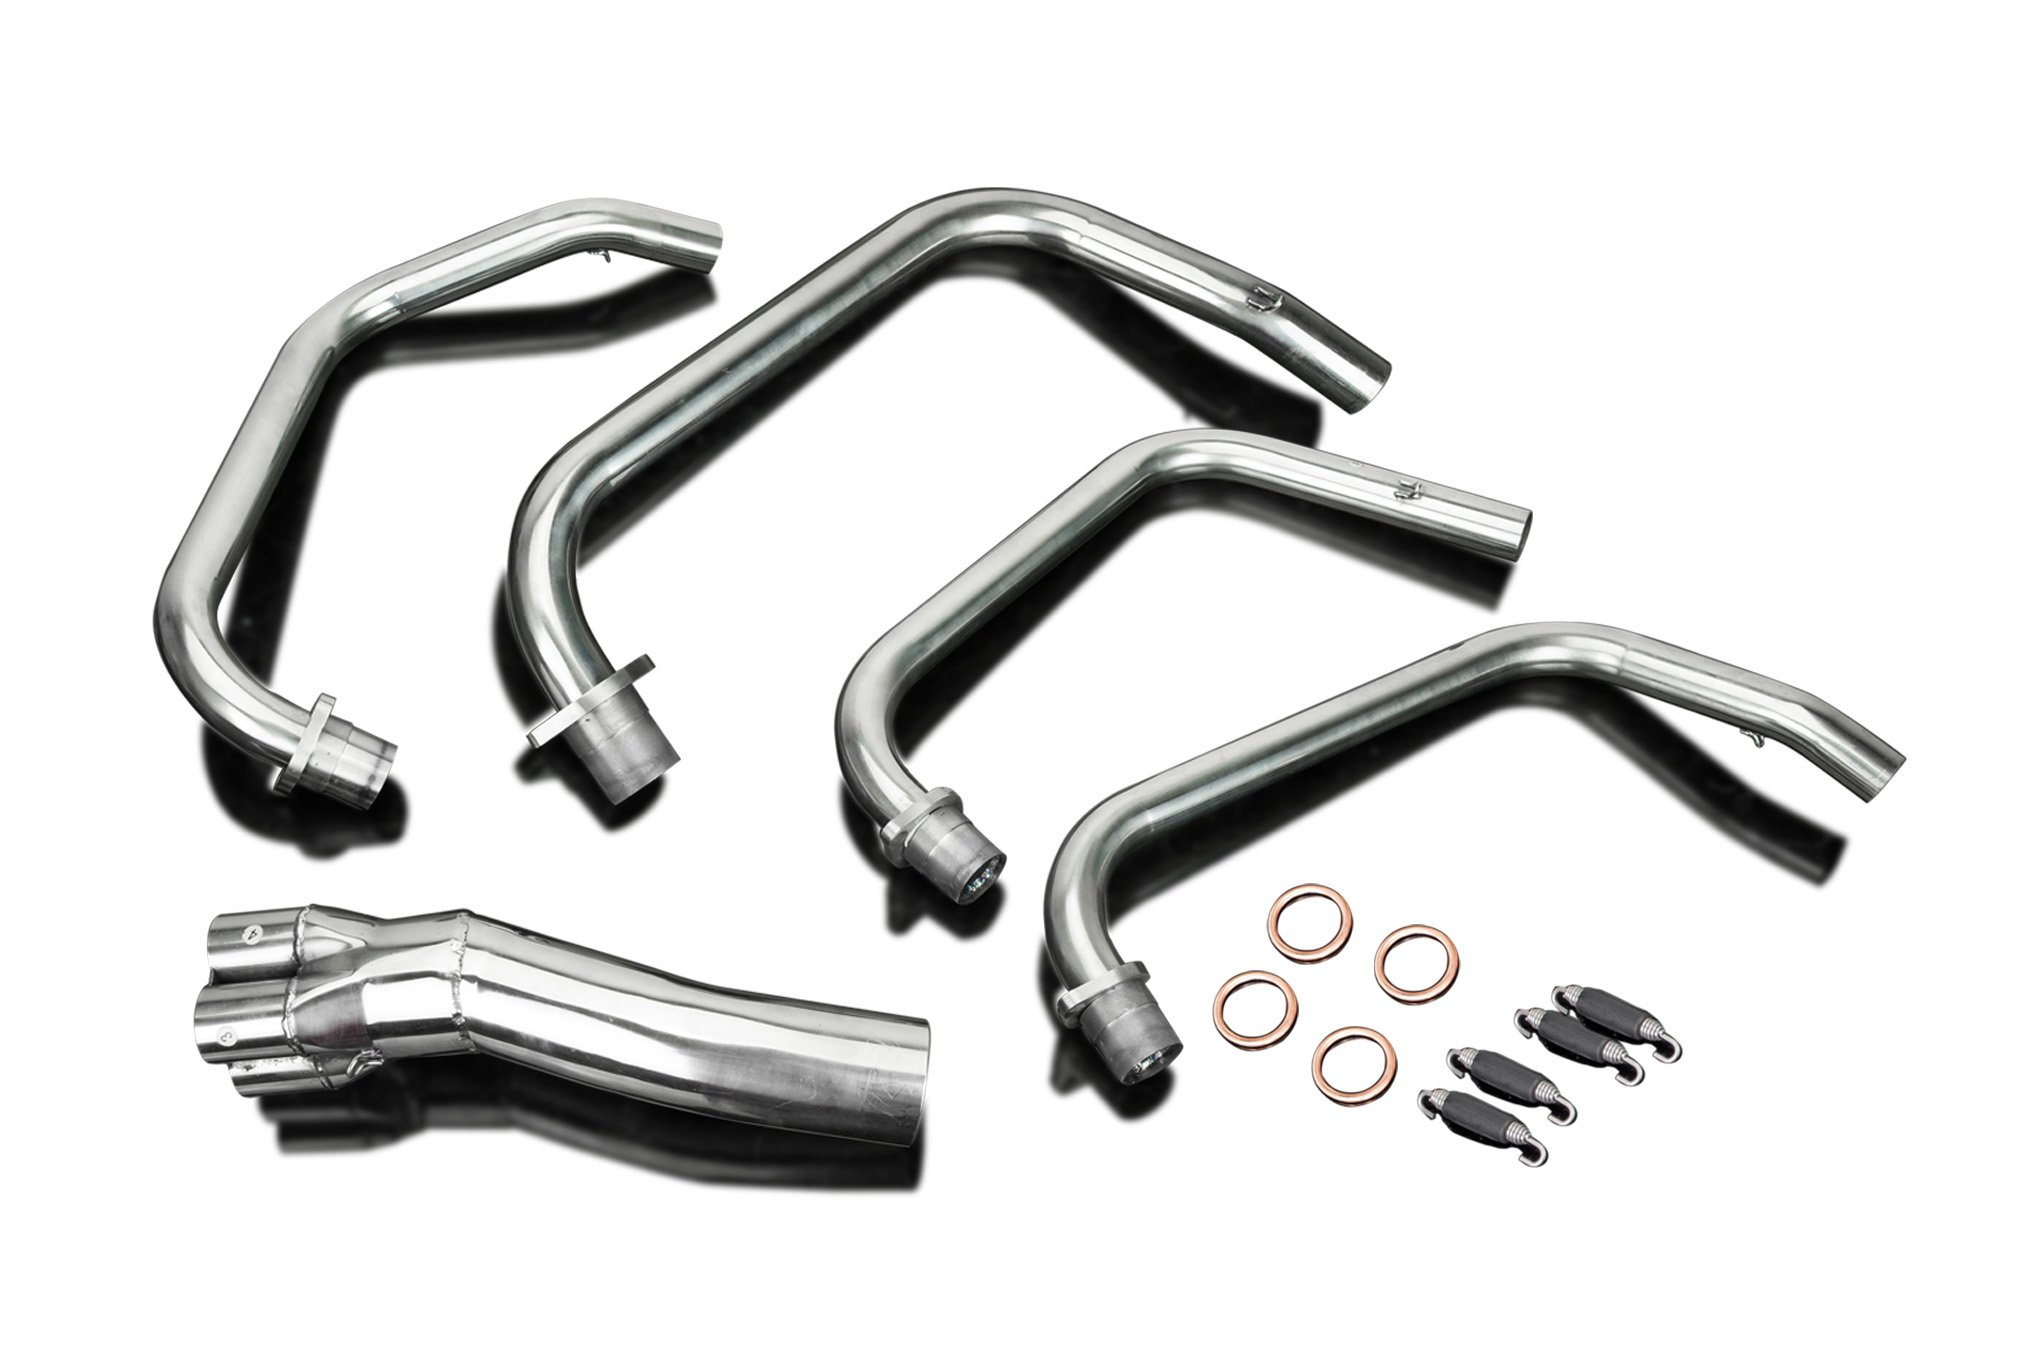 Honda CB550F Supersport 4-1 Stainless Steel Header Exhaust Downpipes Manifold 74 75 76 77 by Delkevic